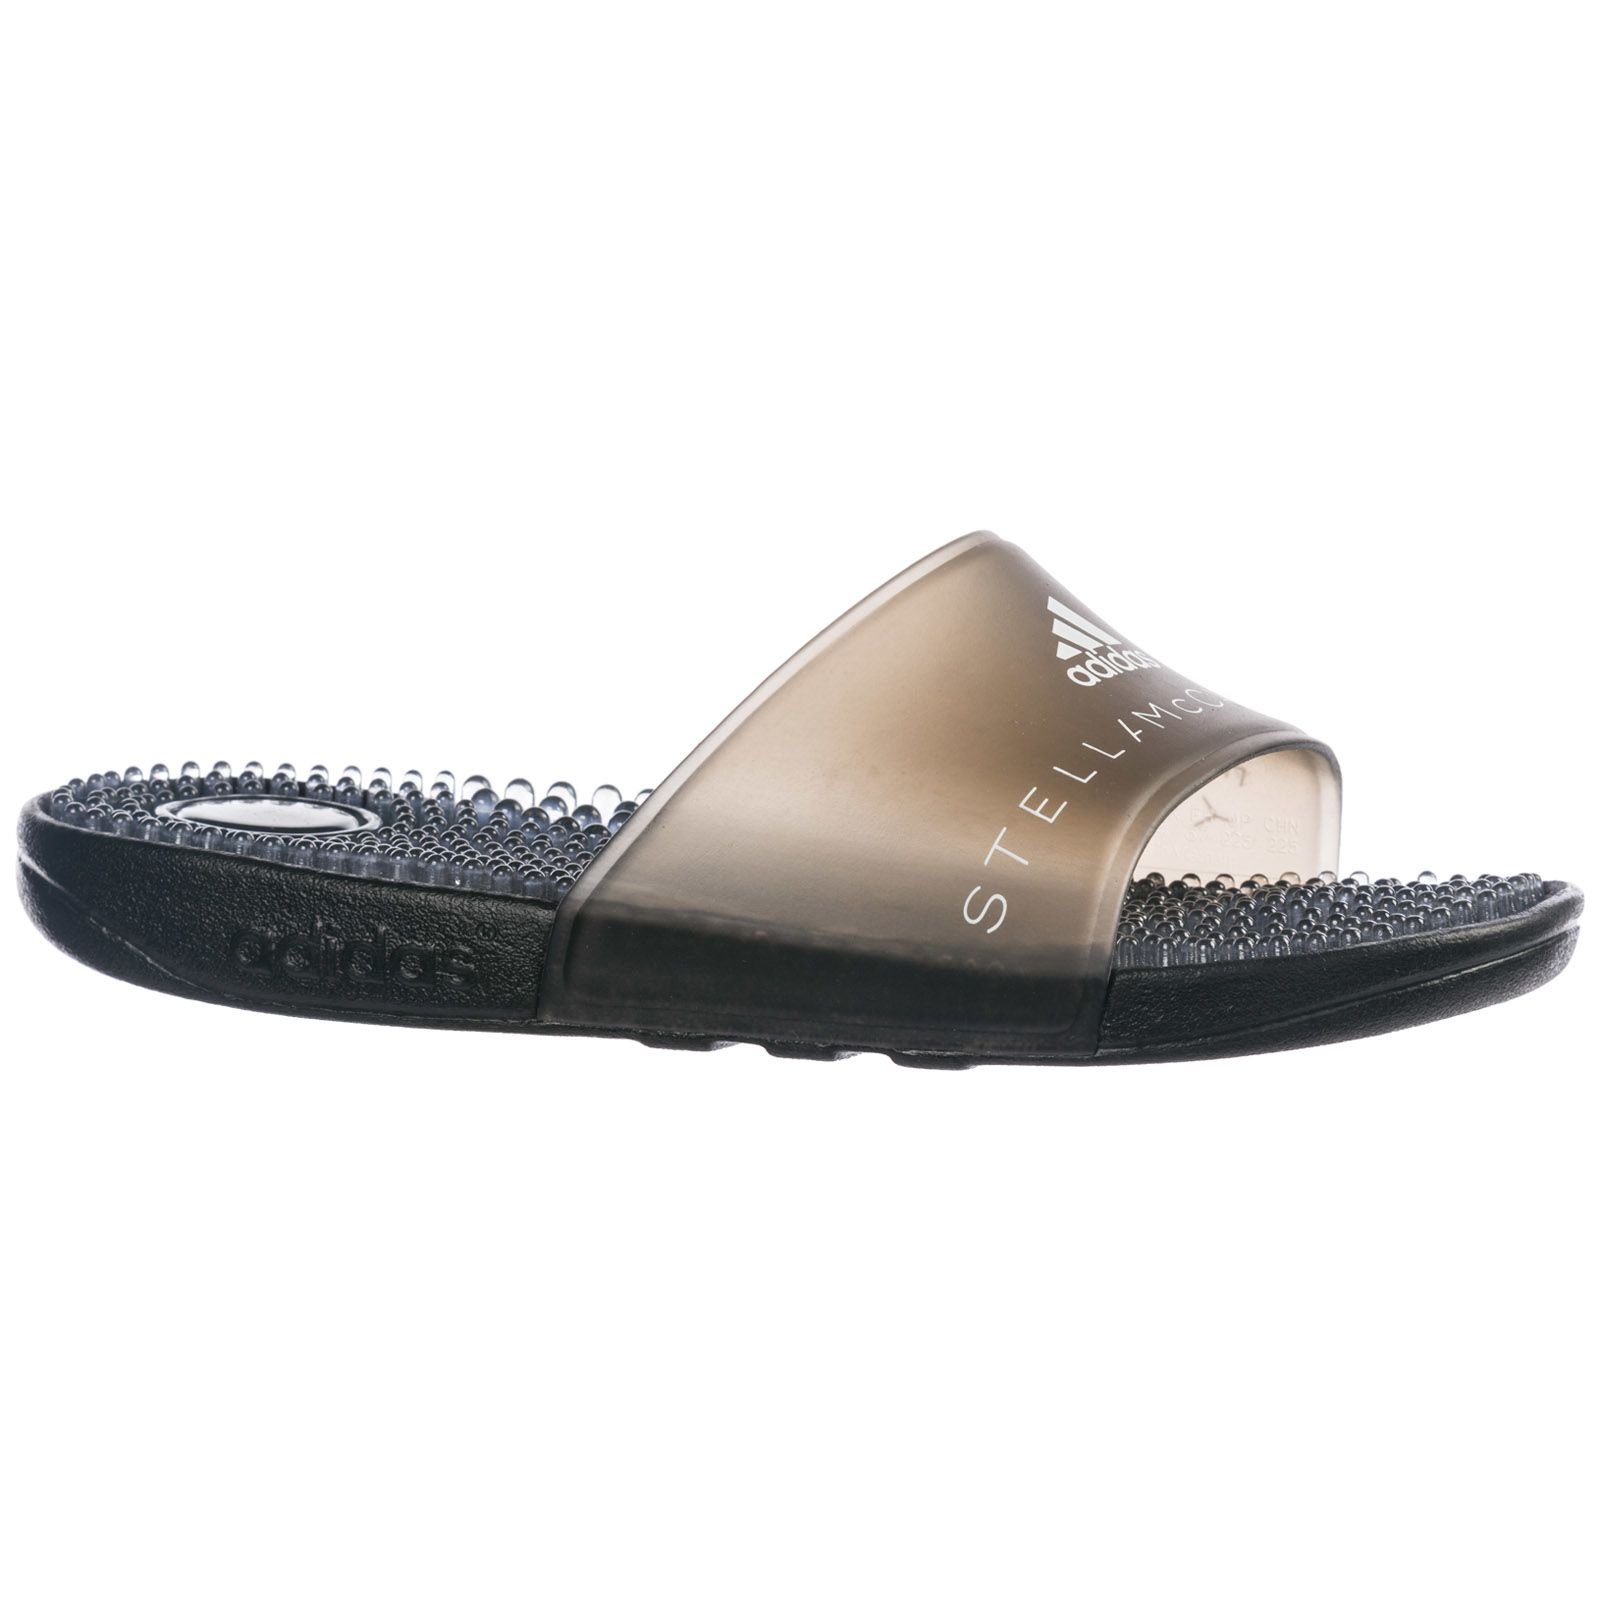 af30124ce326 ... Adidas by Stella McCartney Rubber Slippers Sandals Adissage - Nero ...